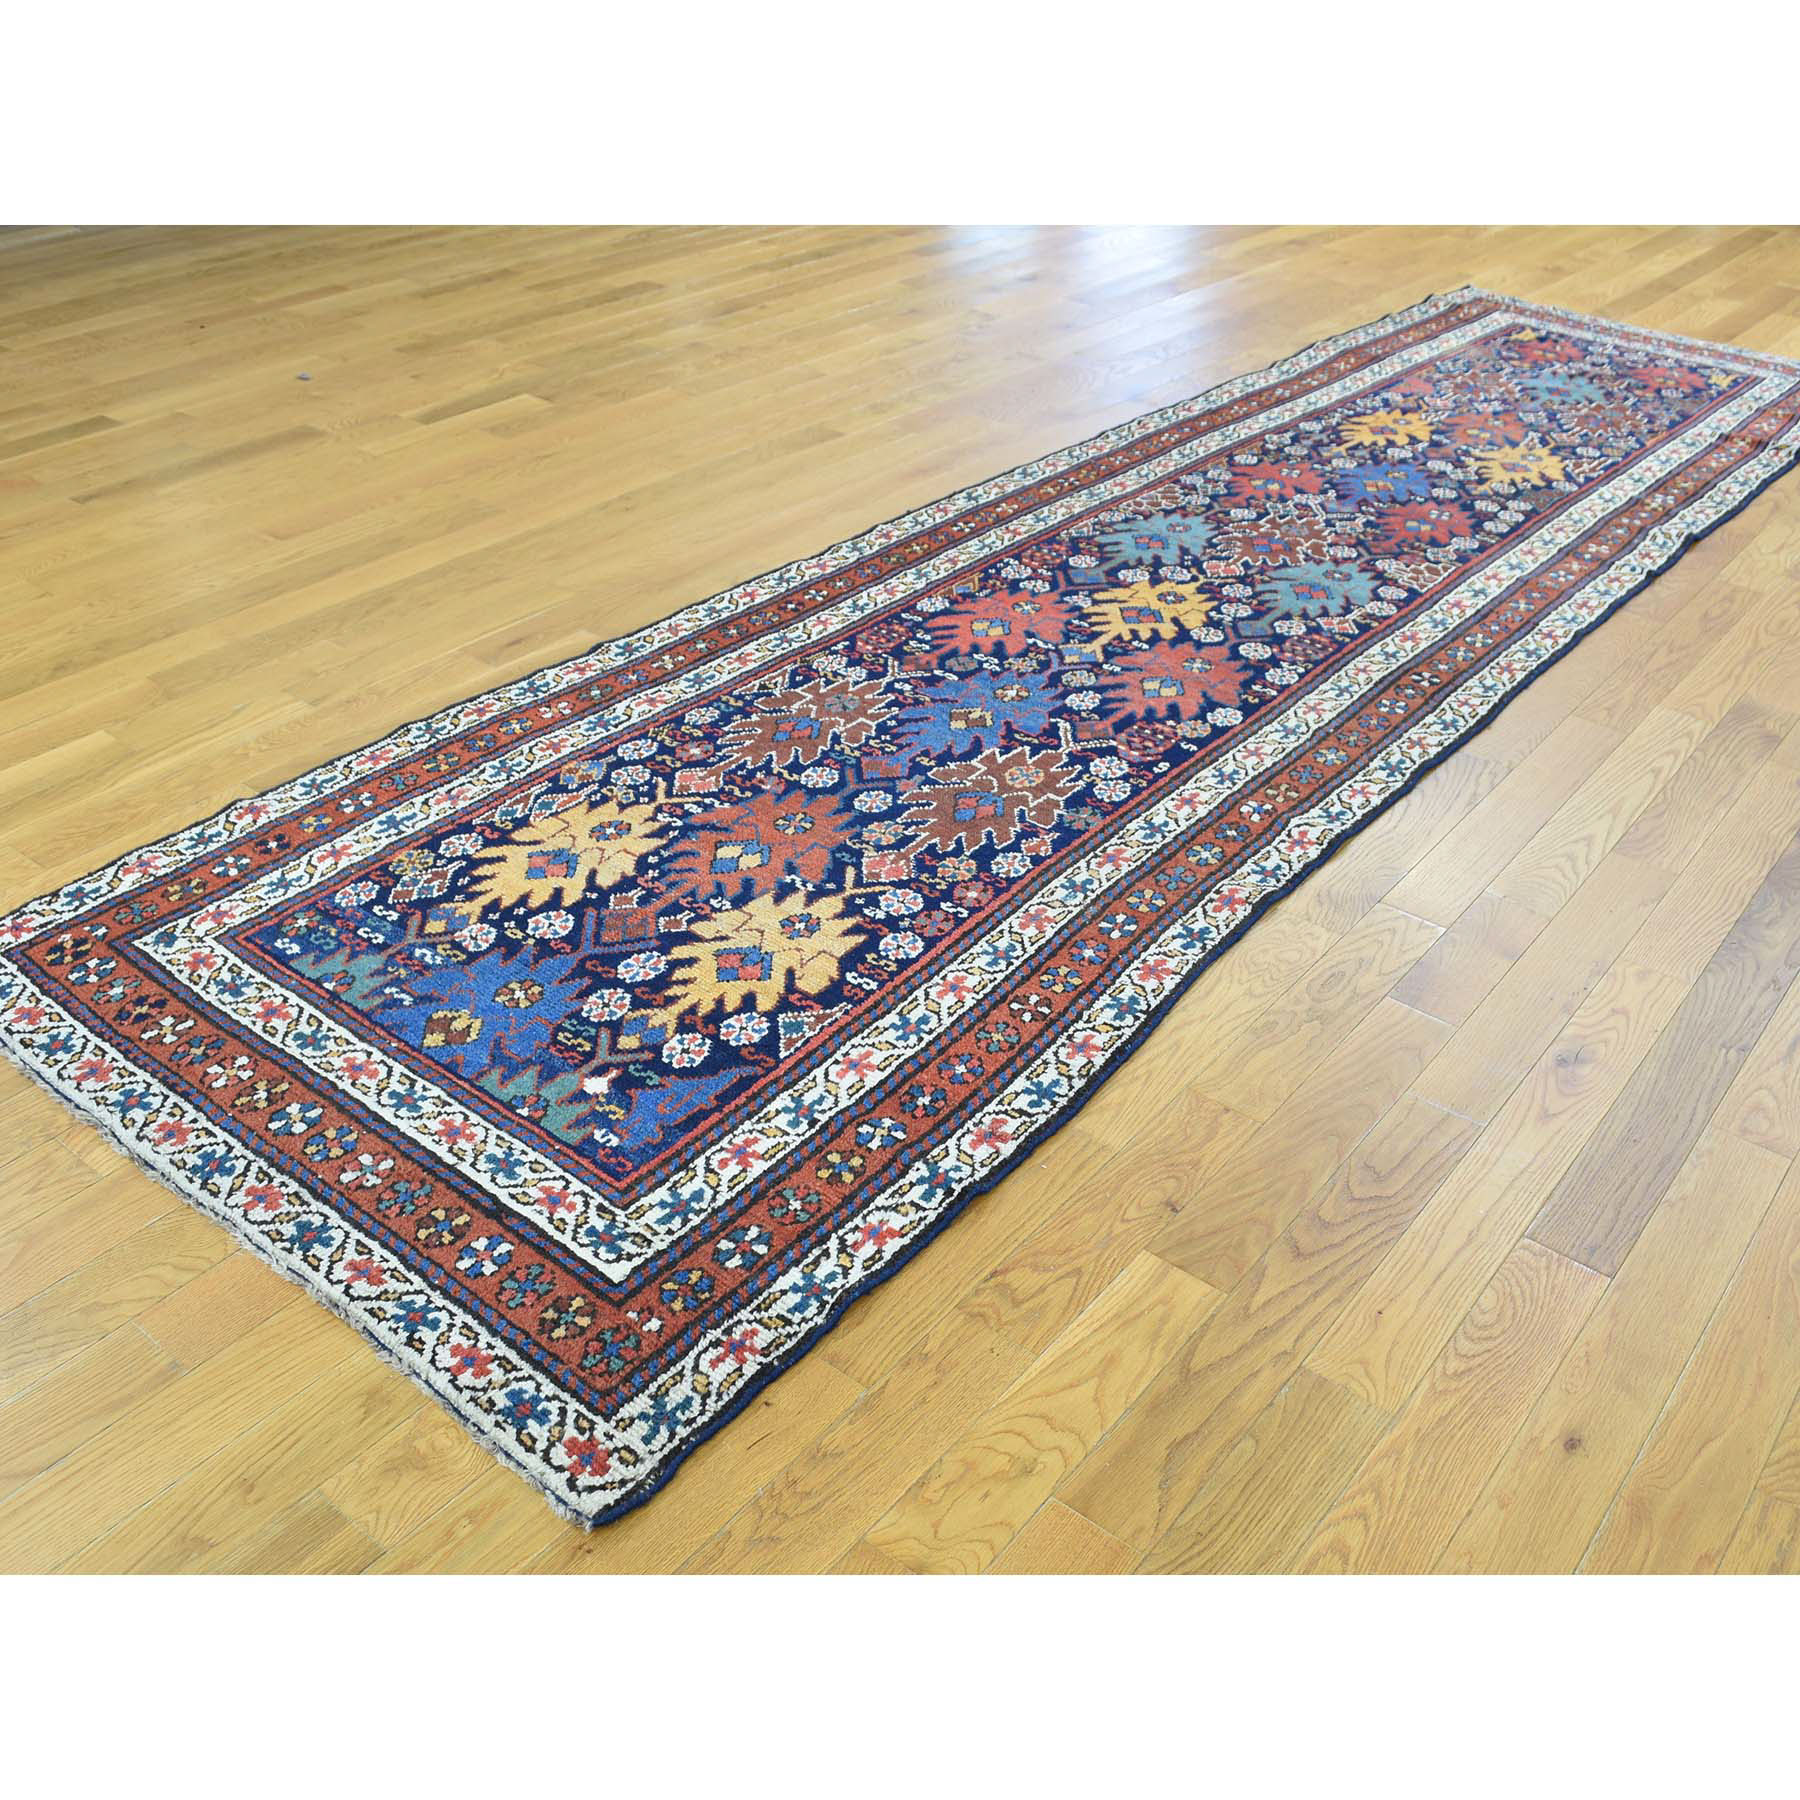 3-5 x12-9  Full Pile Antique Mint Condition Northwest Persian Wide Runner